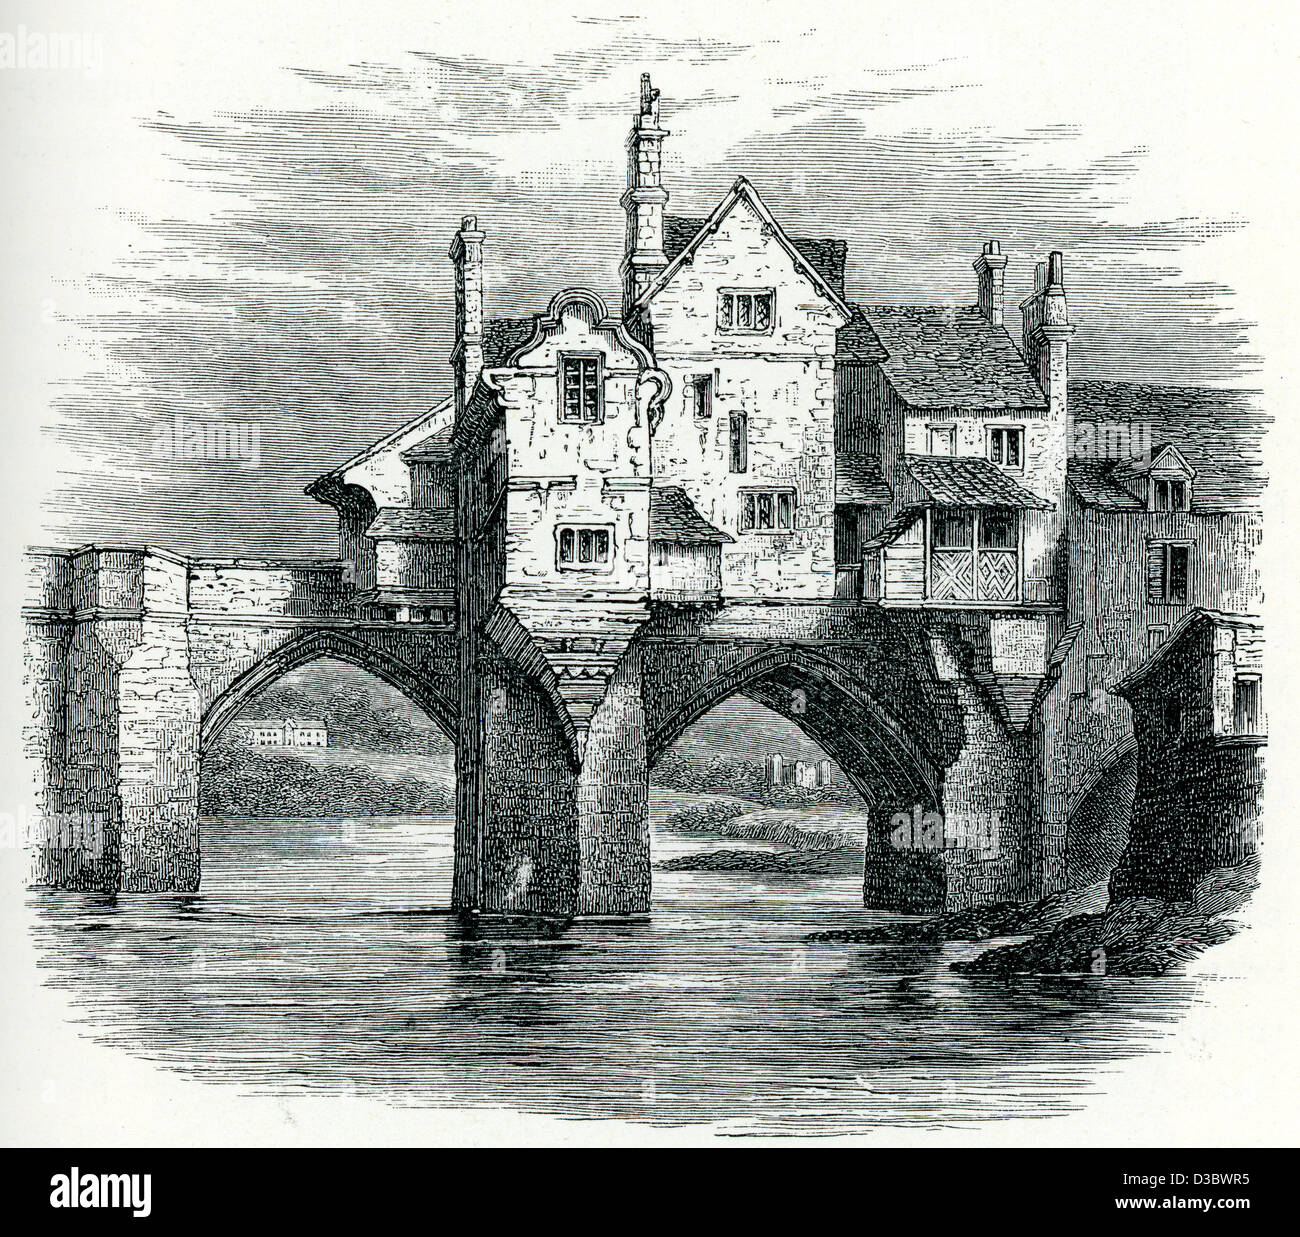 Vintage engraving of Elvet Bridge, a medieval masonry arch bridge across the River Wear, in the city of Durham, Stock Photo